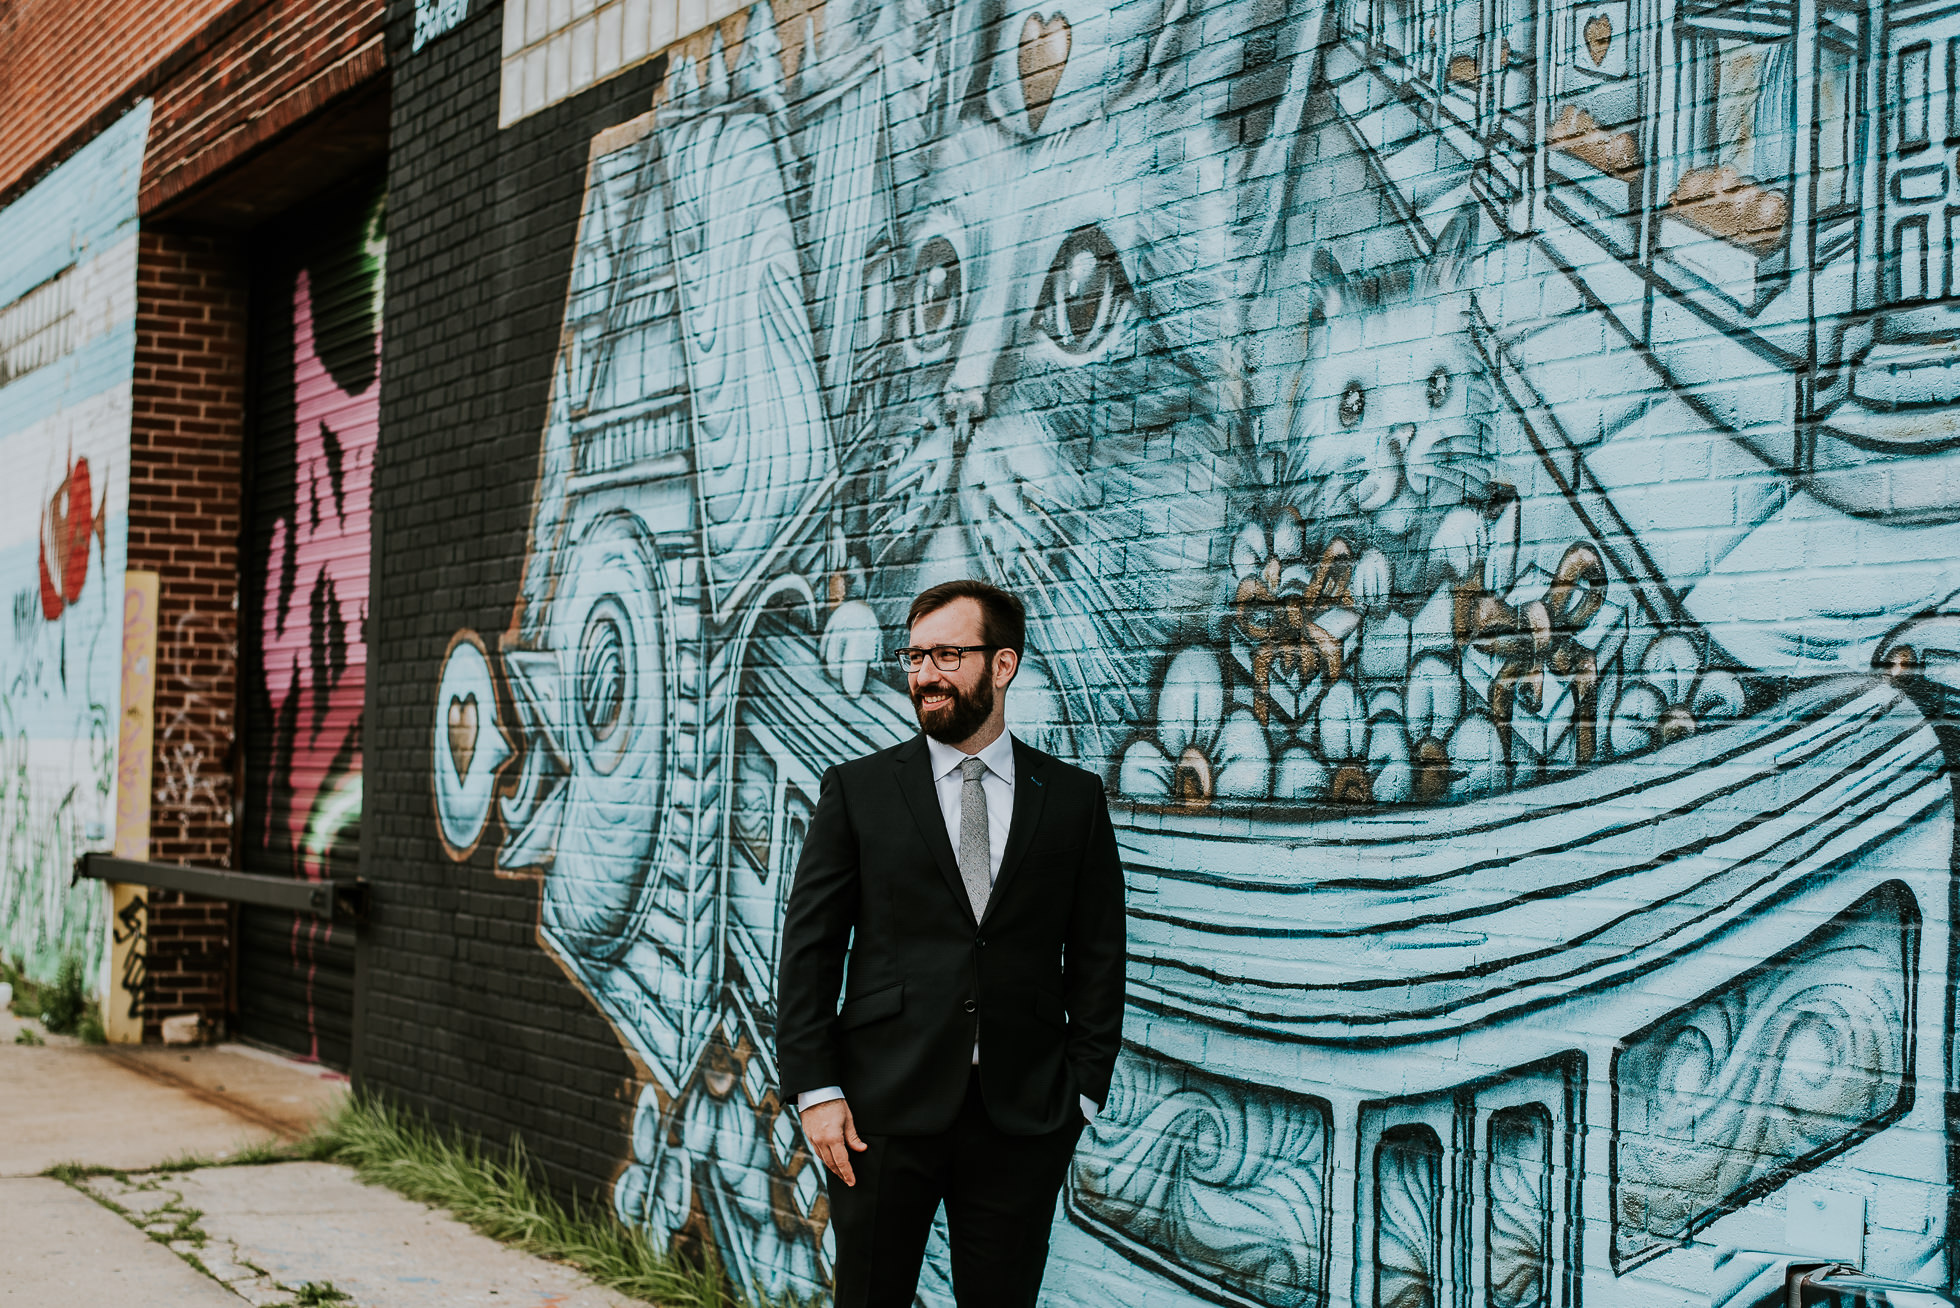 wedding photos graffiti photographed by Traverse The Tides